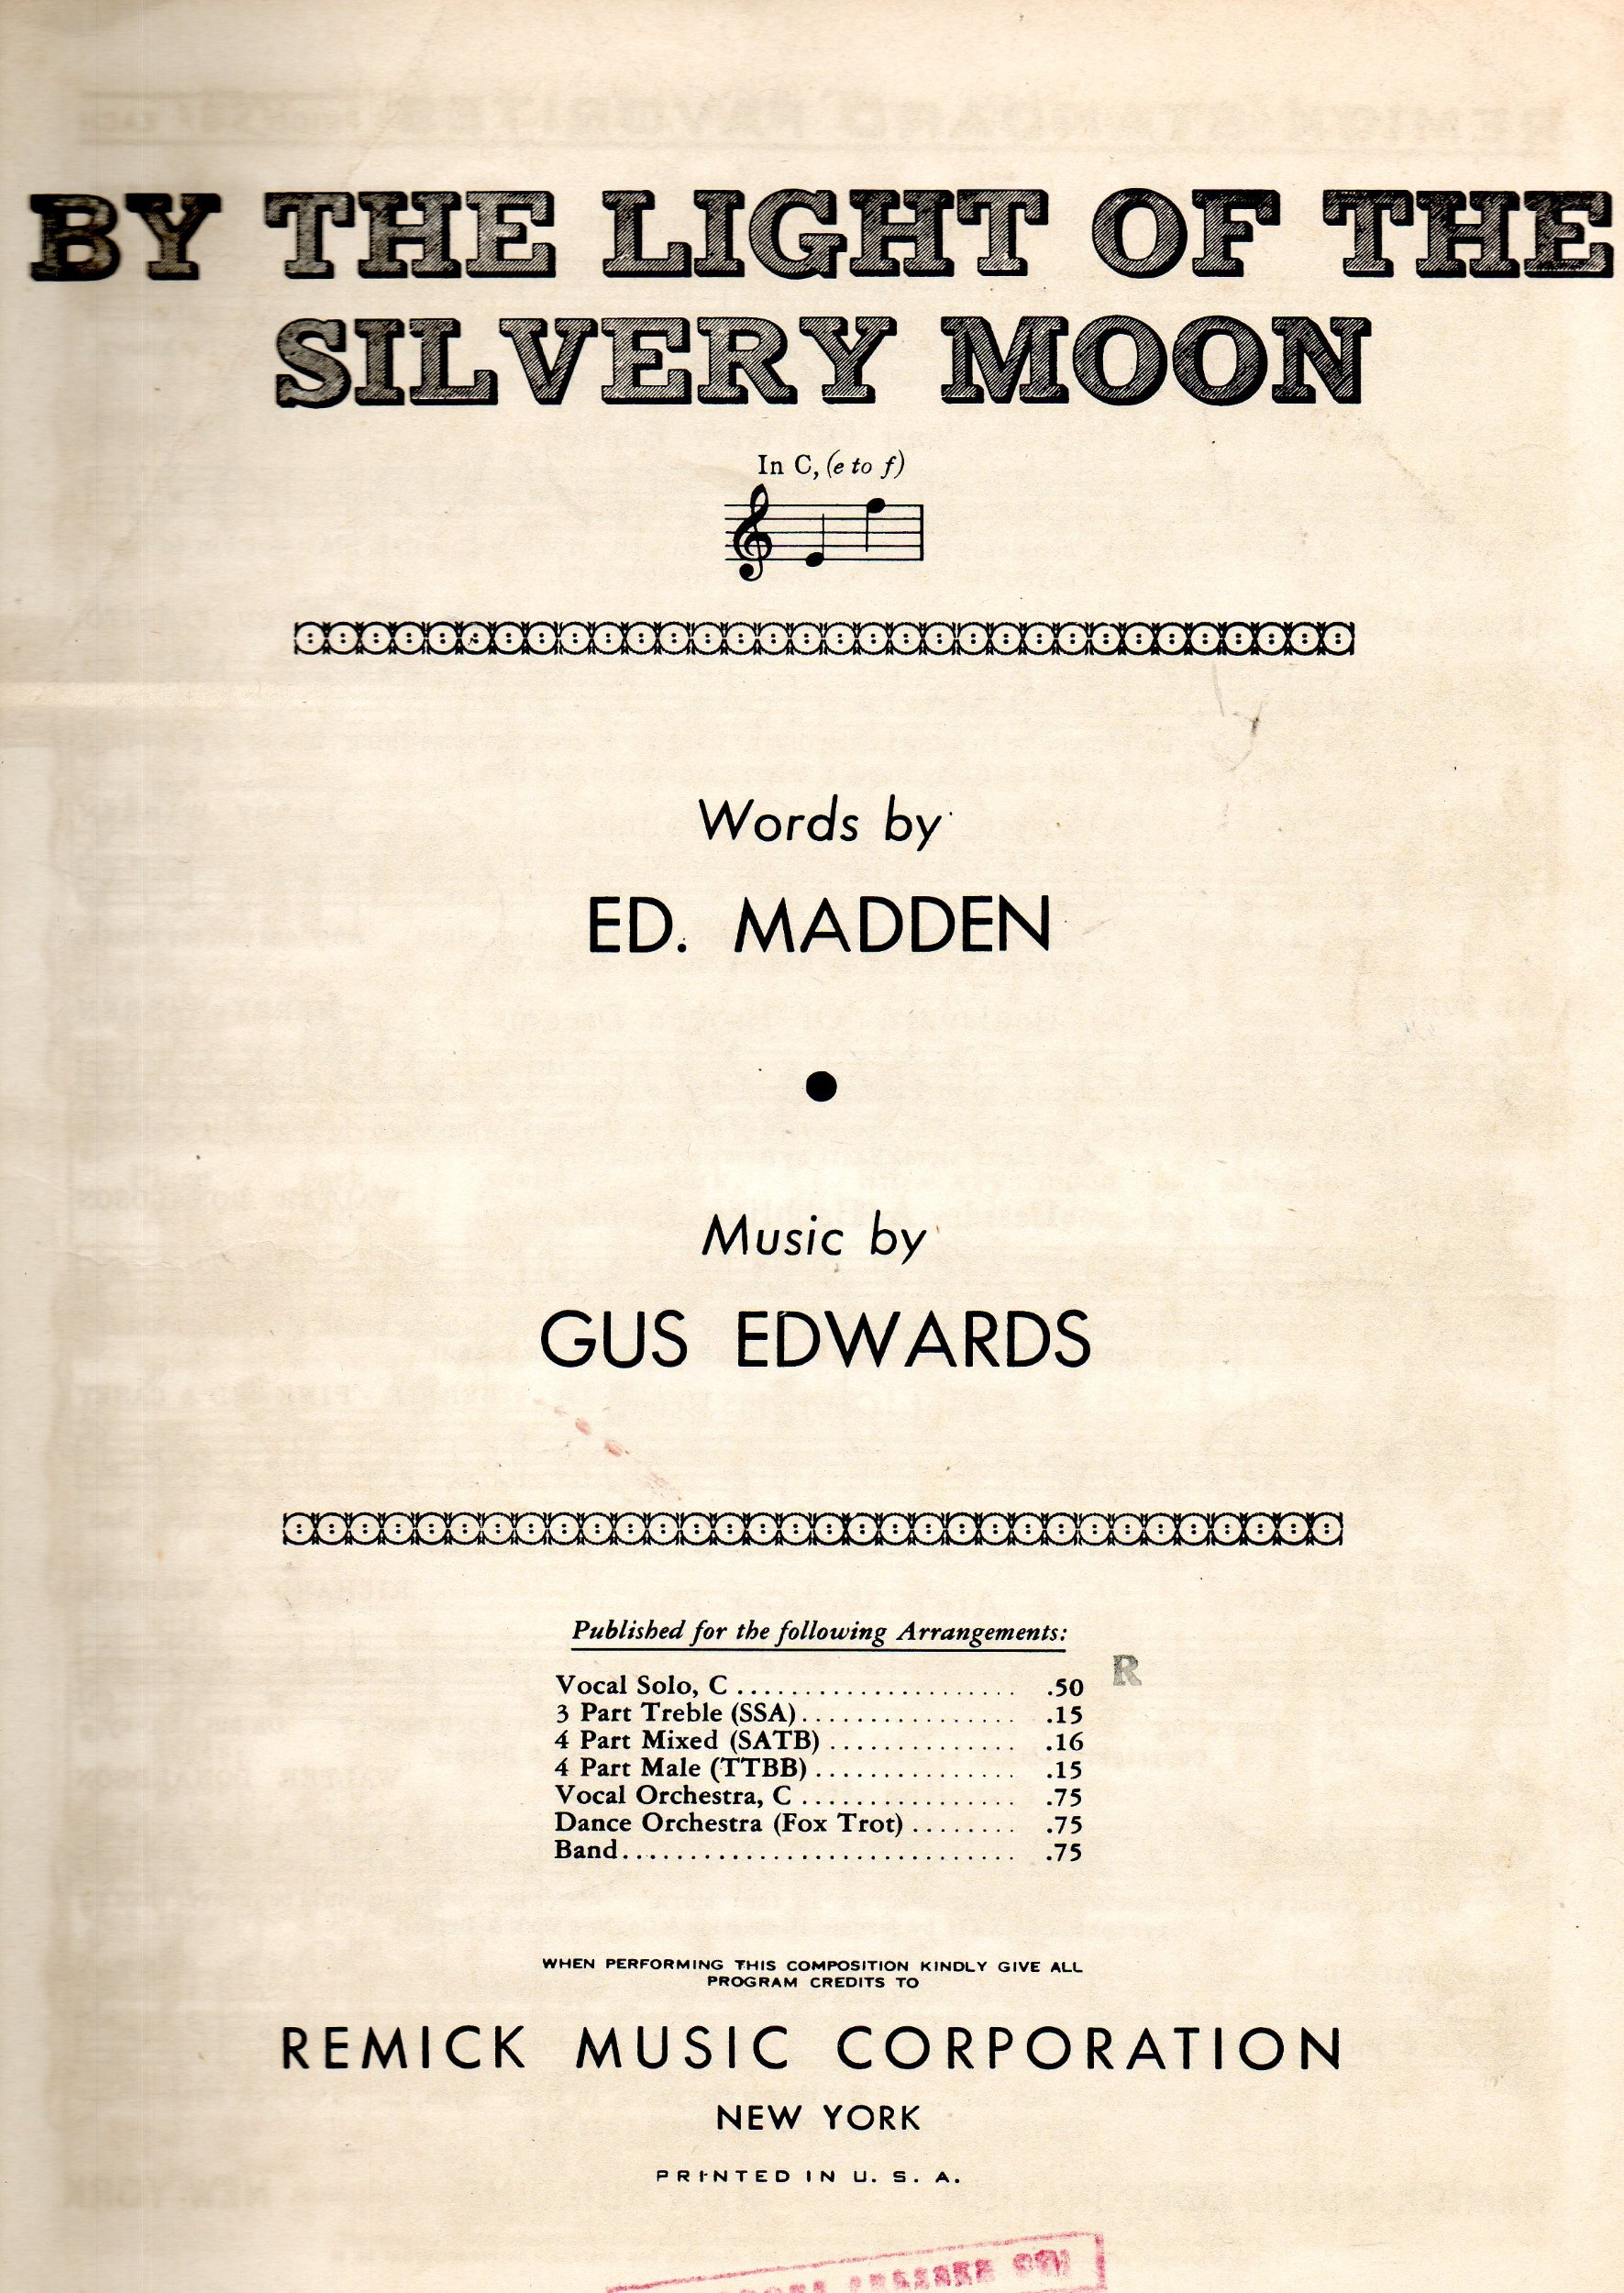 Vintage Sheet Music BY THE LIGHT OF THE SILVERY MOON IN C E TO